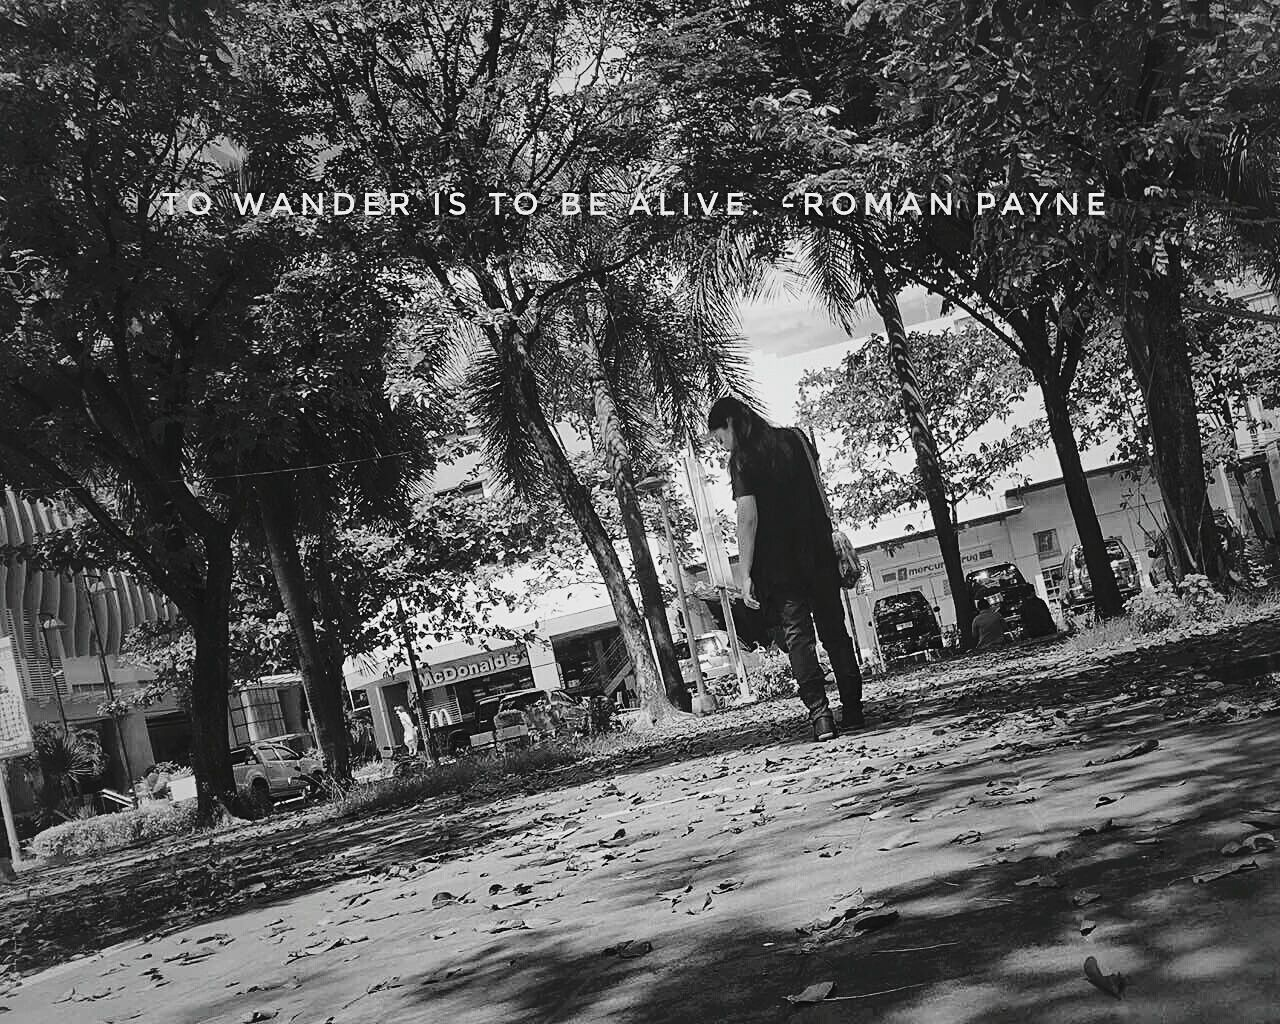 To wander is to be alive. -Roman Payne XishiWanders SereneScene Outdoors Wander Explore Learn Stroll WanderingInSolitude Peace Low Angle View Peaceofmind Peaceofheart Goodlife Solitude SilenceAndSolitude